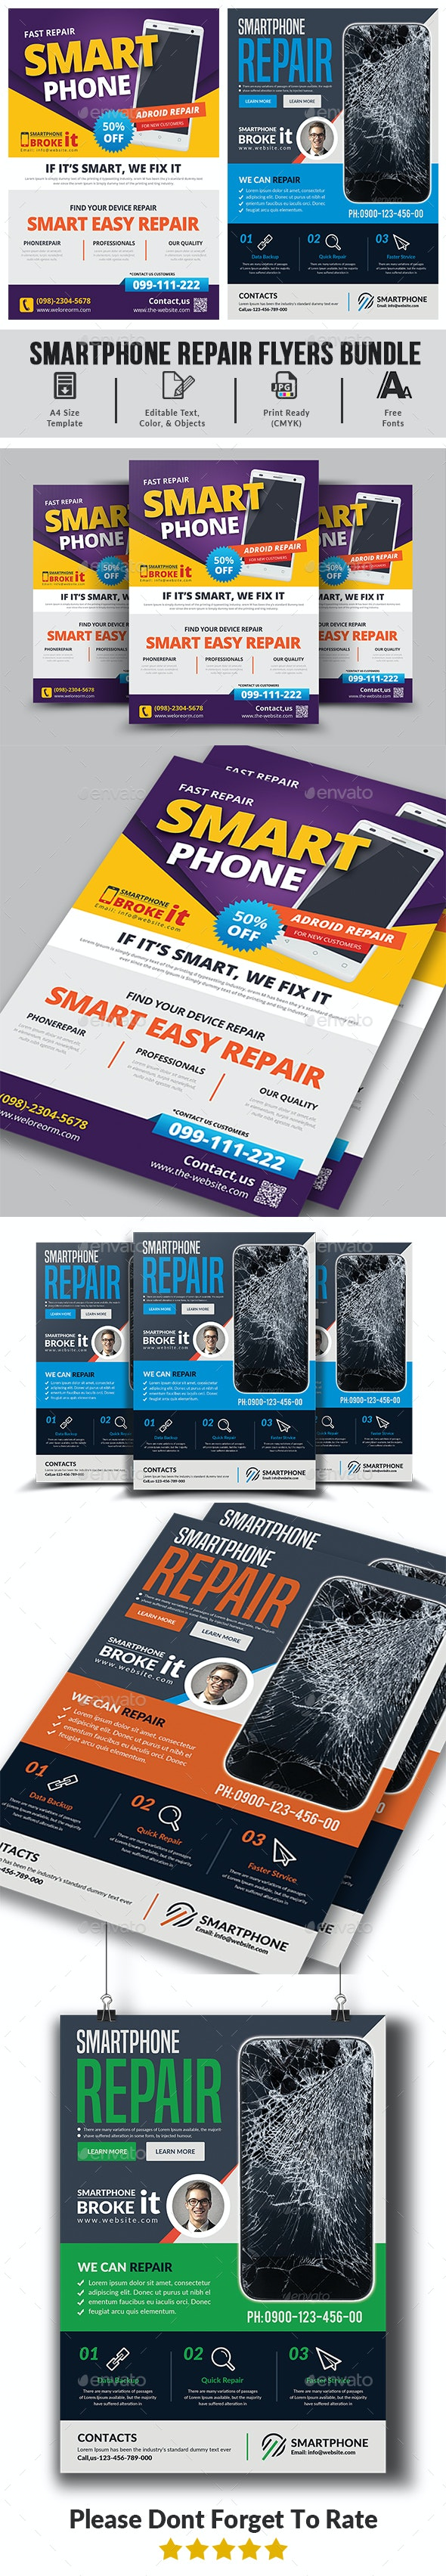 Smartphone Repair Flyers Bundle - Corporate Flyers